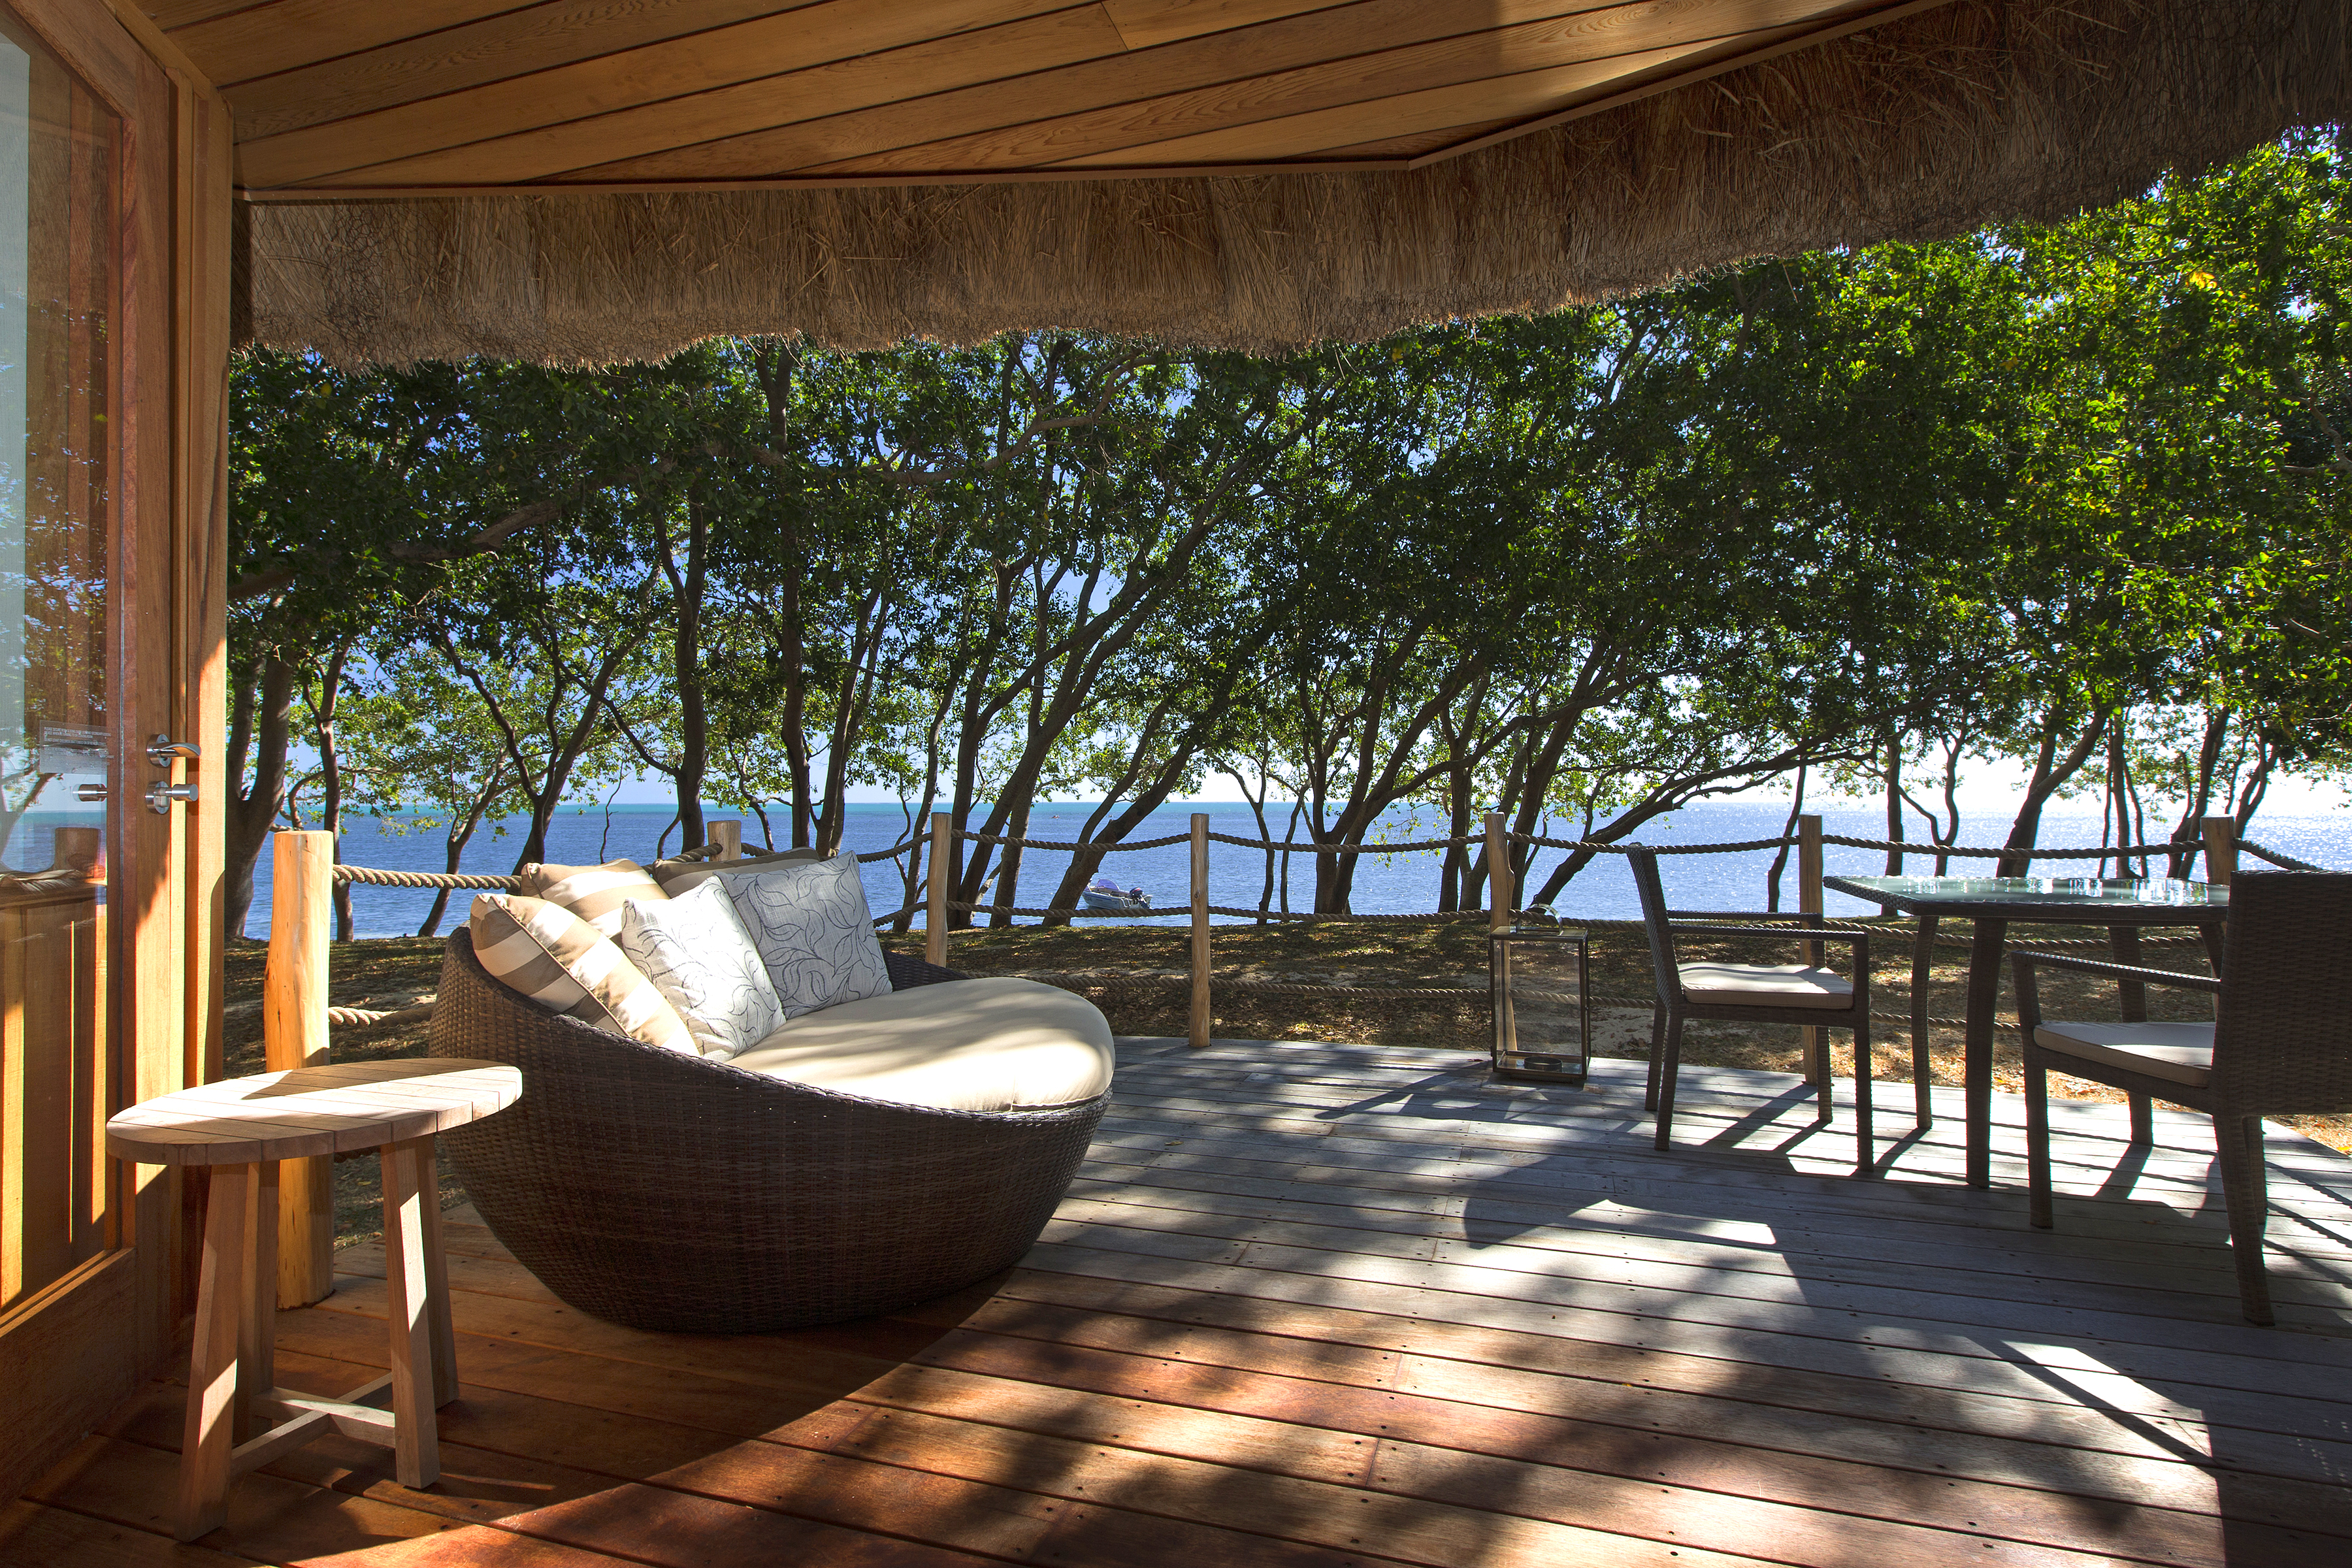 SHED – BEACHFRONT BUNGALOW TERRACE AND VIEW (2)